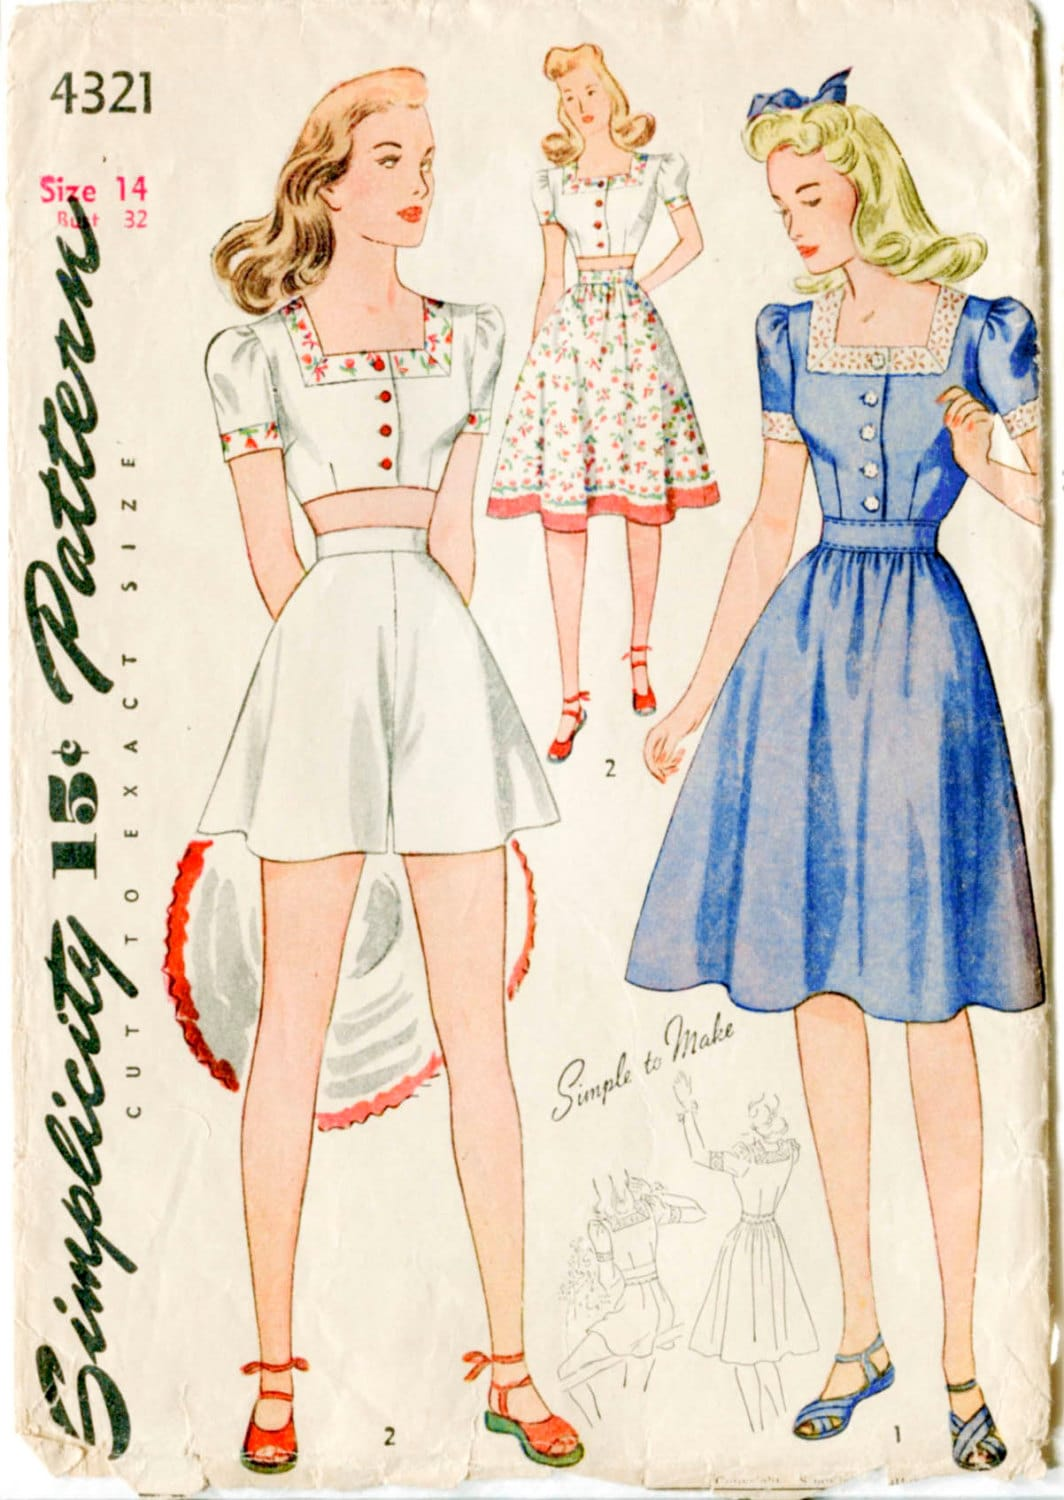 1940s 40s vintage sewing pattern crop top playsuit skirt beach 1940s 40s vintage sewing pattern crop top playsuit skirt beach romper bust 32 b32 repro jeuxipadfo Image collections